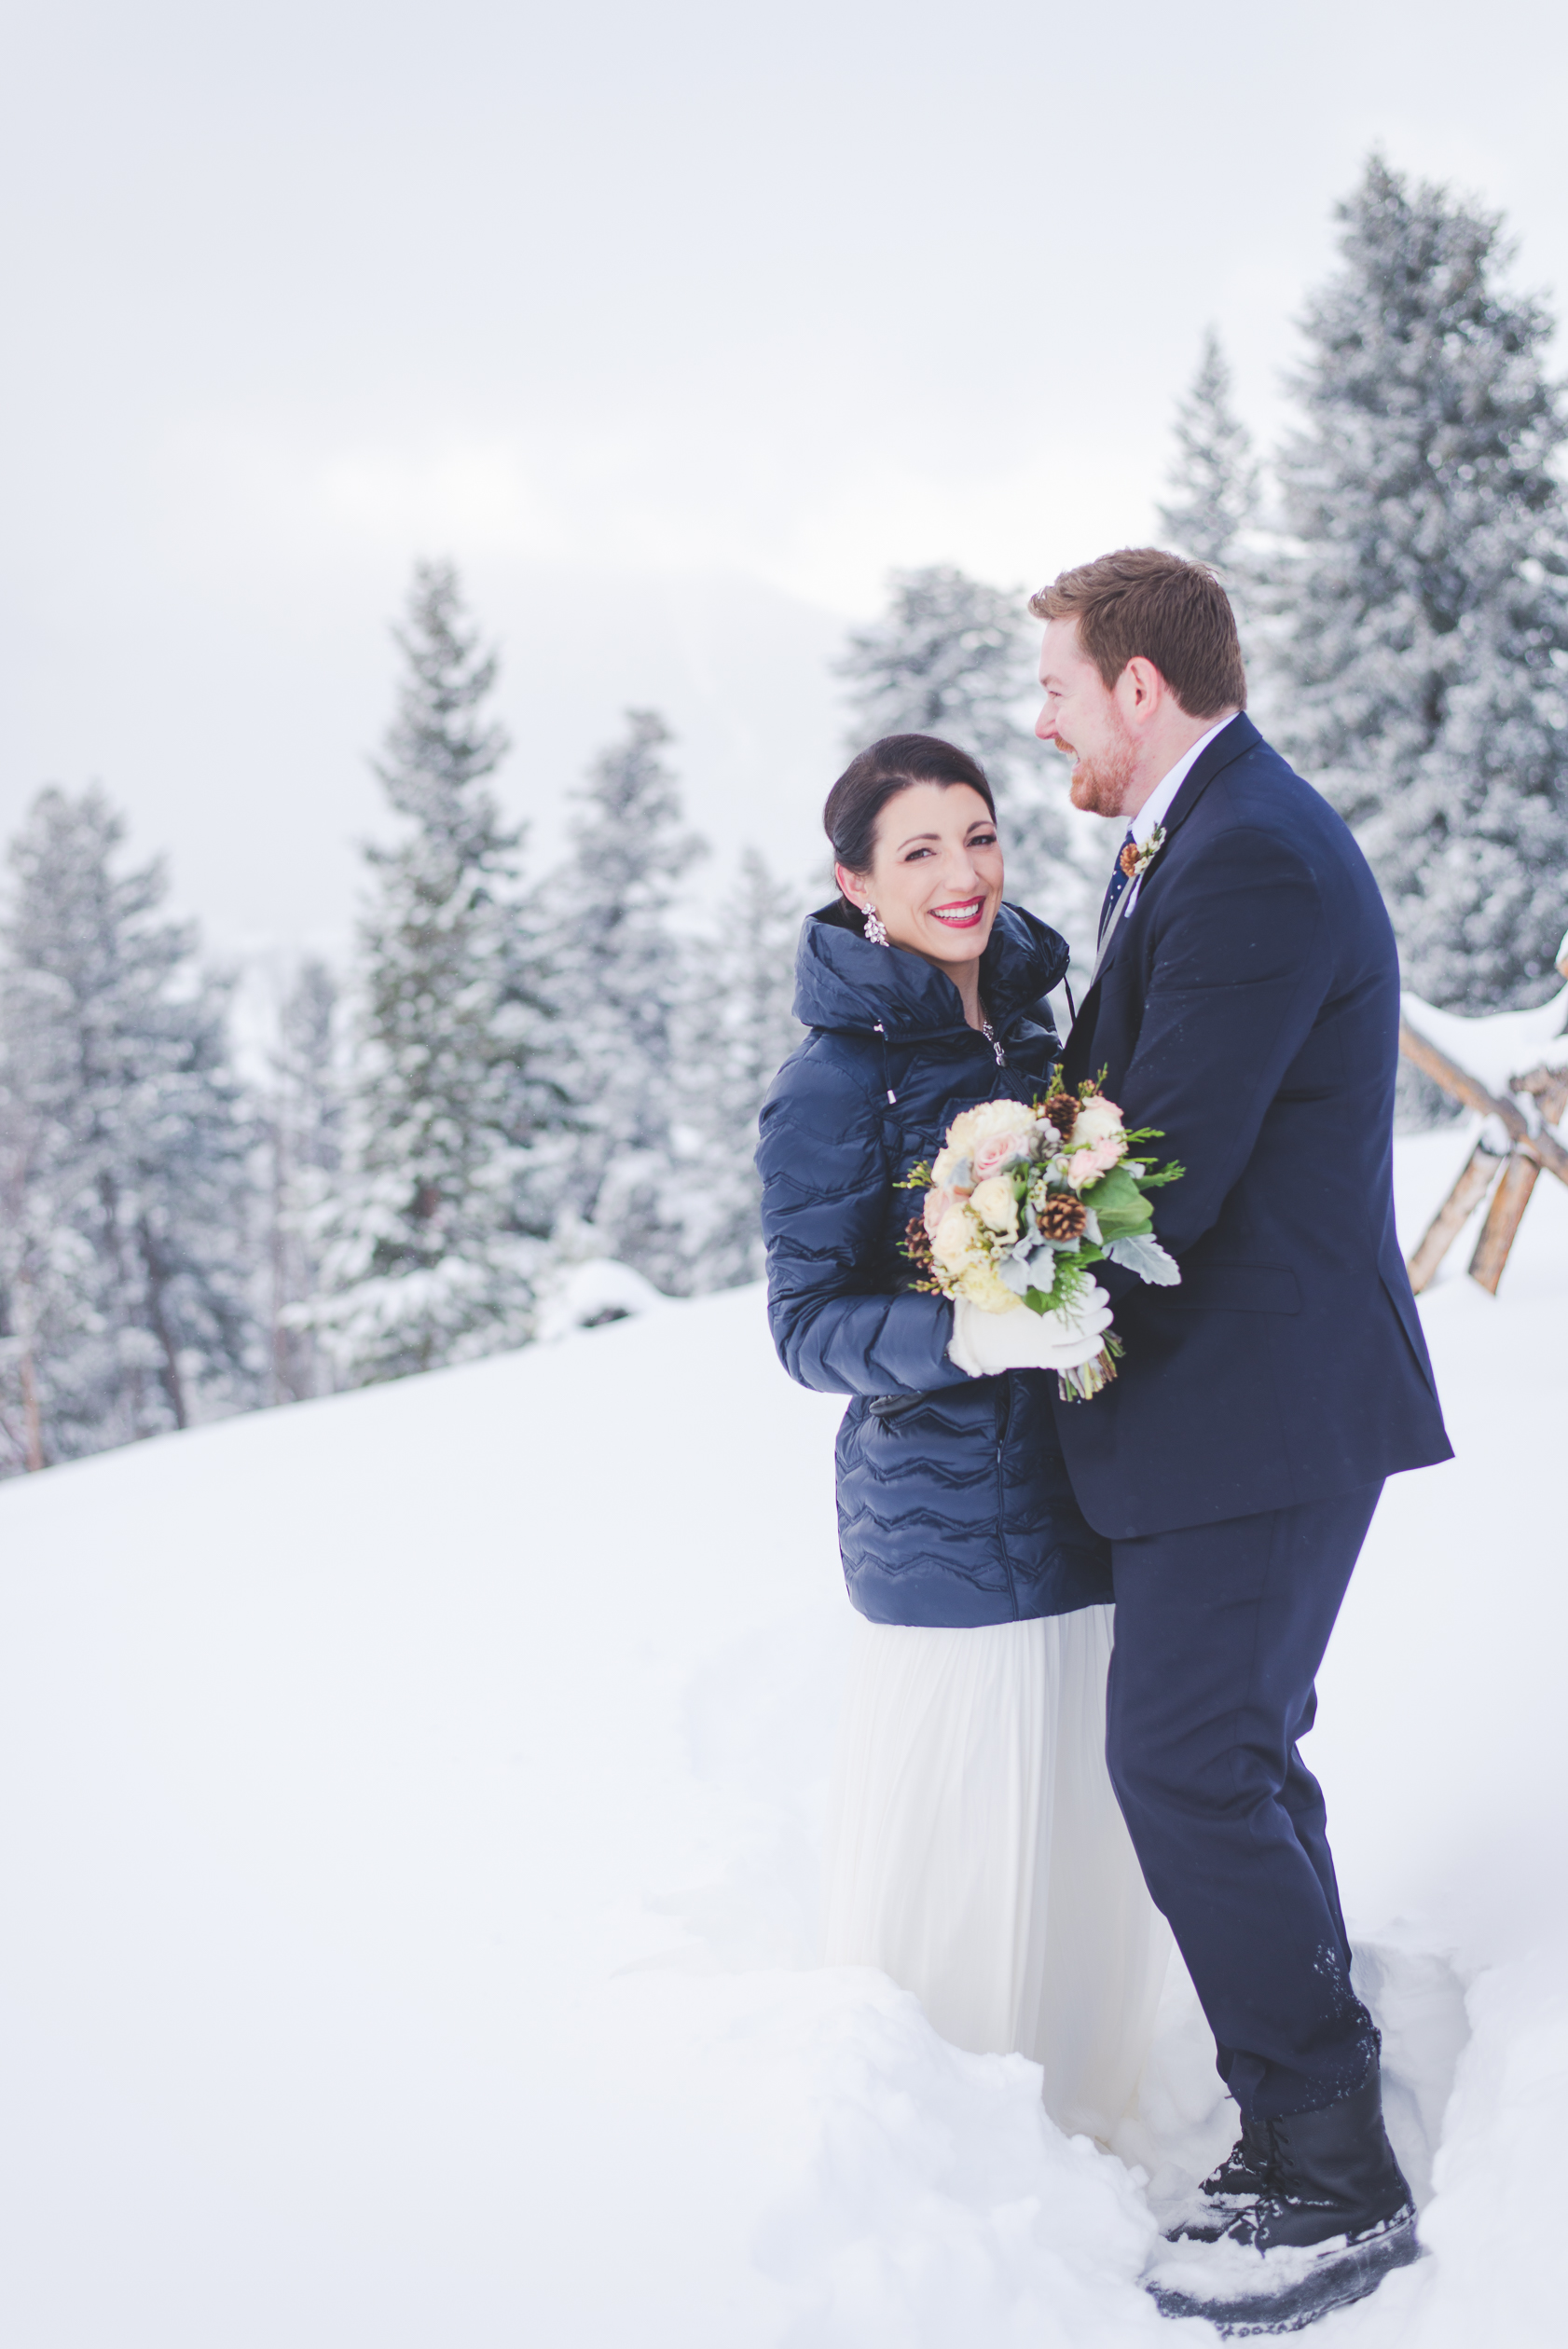 the snow was deep and smiles endless at sapphire point after this destination couple's winter elopement in Breckenridge, colorado. | photo by keeping composure photography